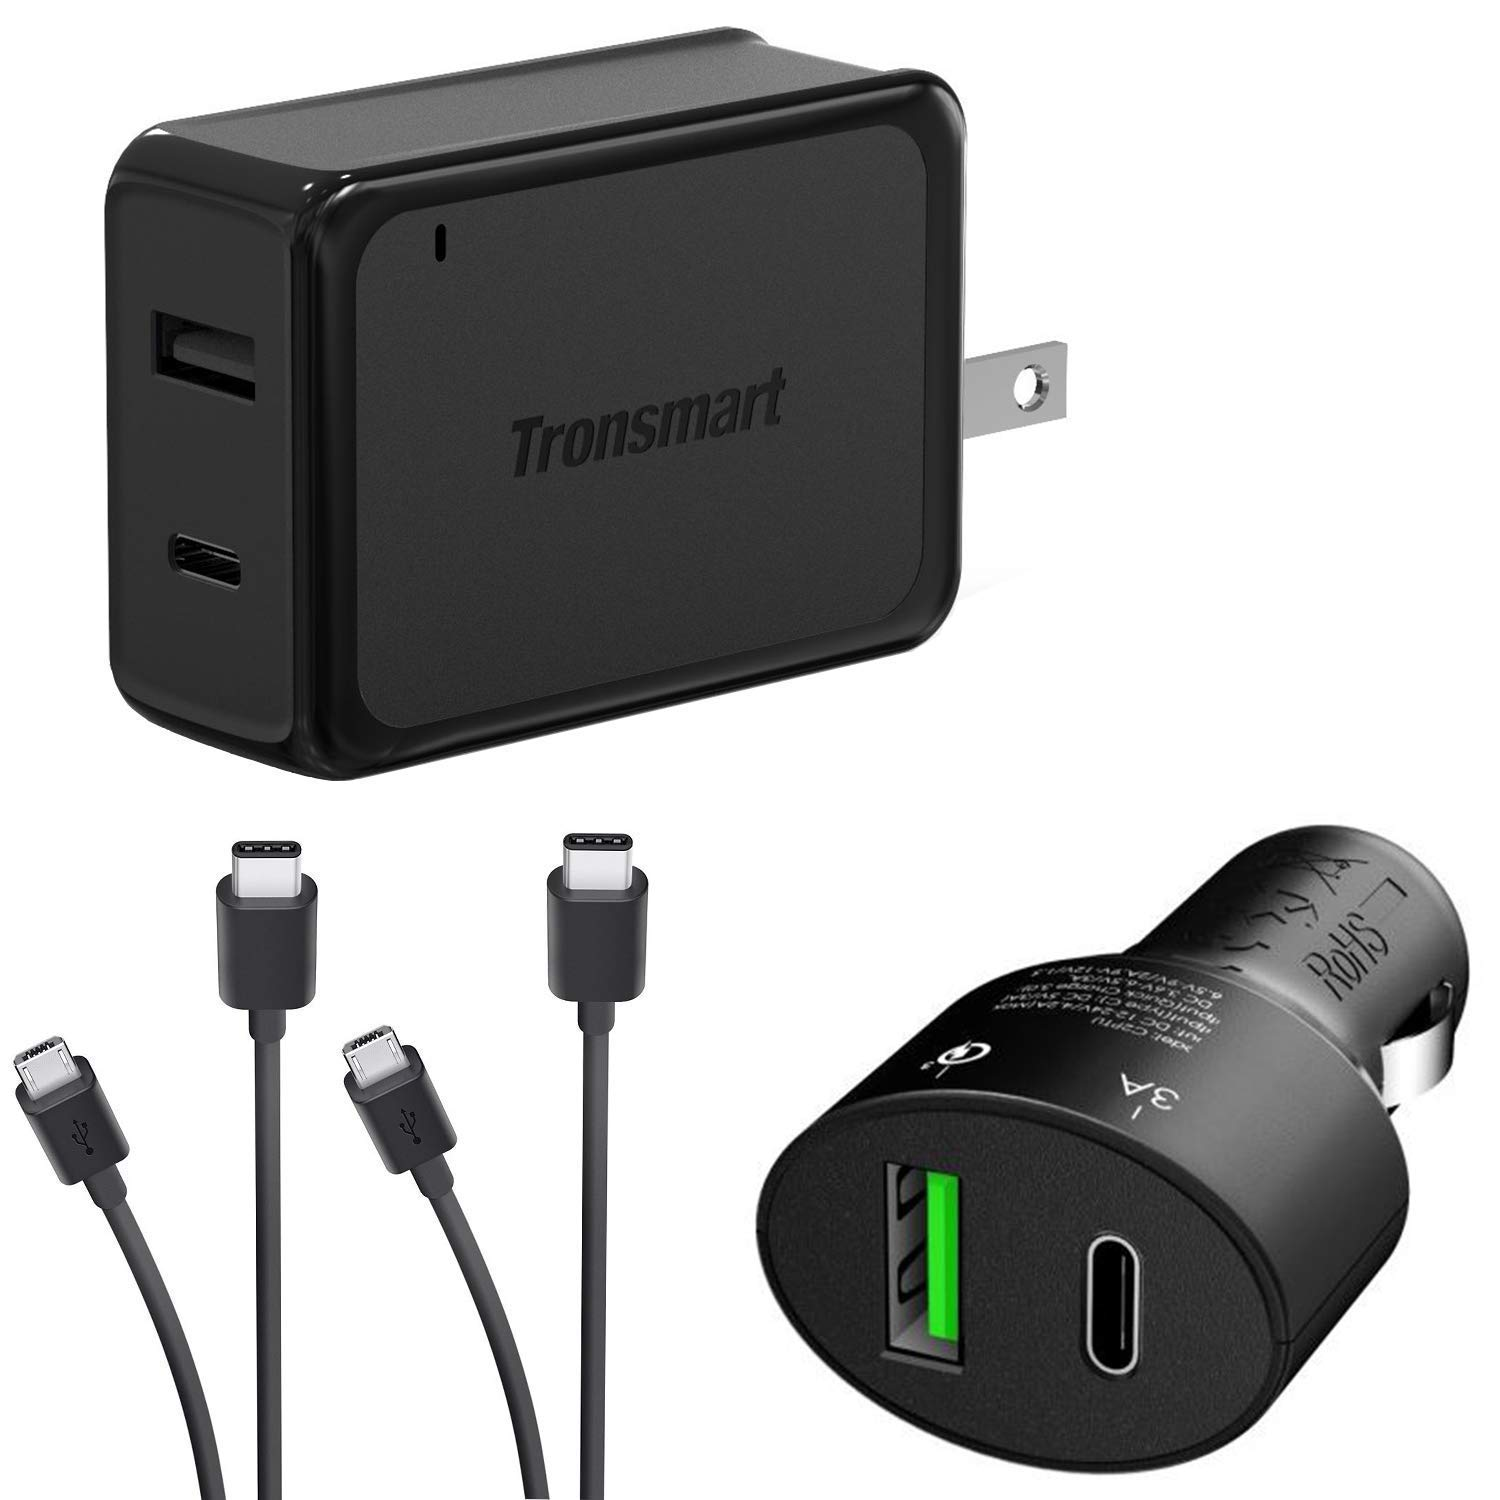 Turbo Quick Wall and Car Charger Kit for Samsung Galaxy S10+ with MicroUSB & USB Type-C Cables! (33Watts)